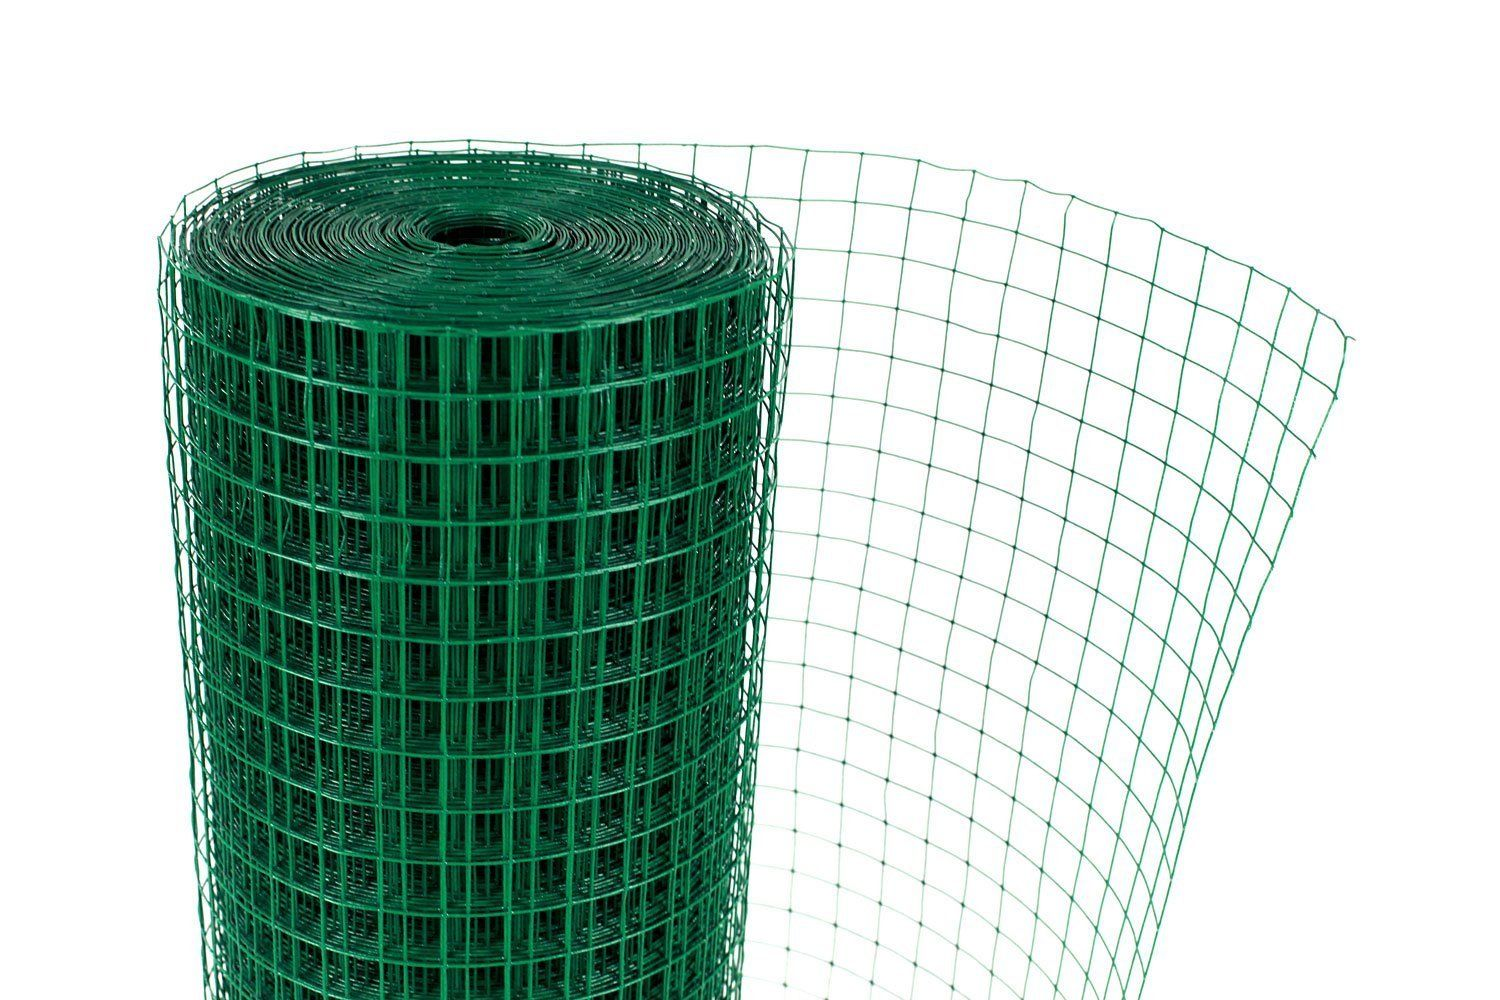 Green PVC Coated Welded Mesh Fence Wire For Garden Fencing Guard Barrier 4 Sizes